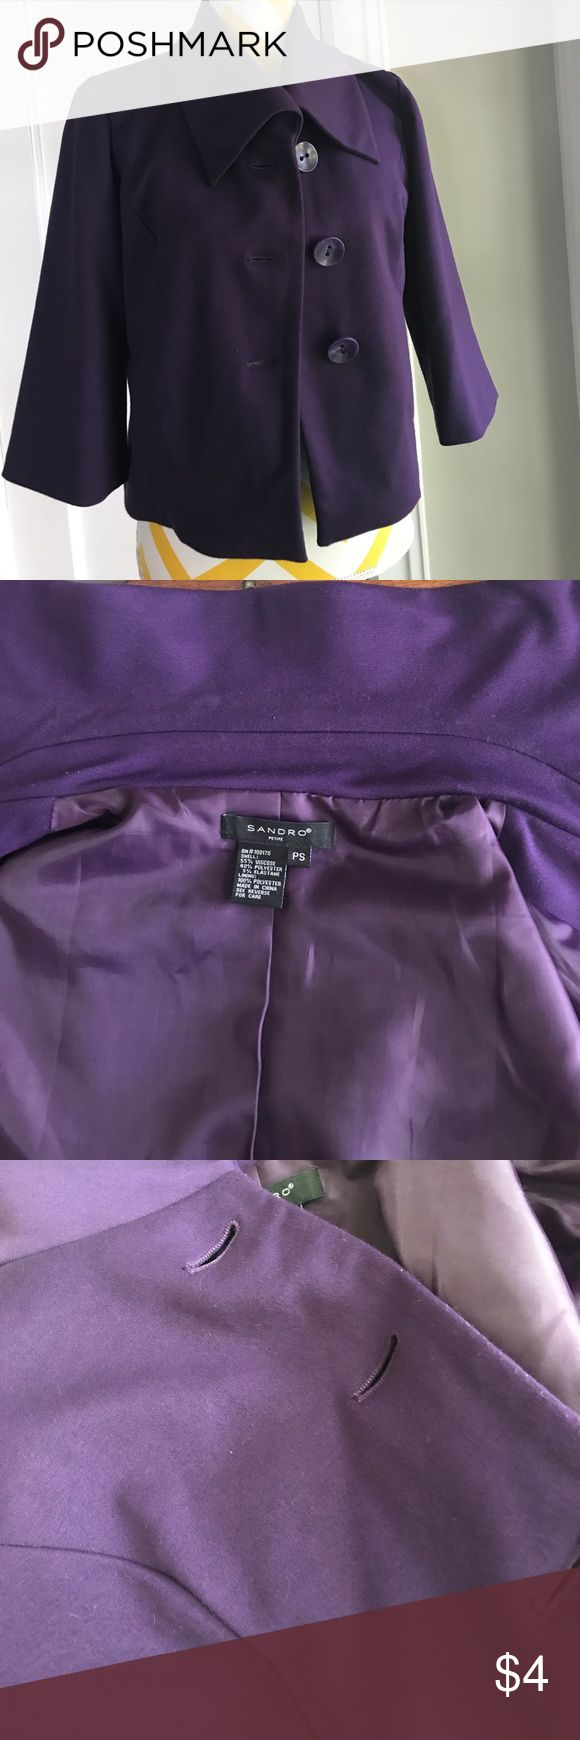 Purple ladies cropped blazer size PS Purple ladies cropped blazer size PS- used condition- pilling and a little bit of wear in the inside of the collar, overall a great piece for someone looking to add to their workwear collection without spending a lot. The jacket has pockets as well and it is cute with black pants or skirt. Jackets & Coats Blazers